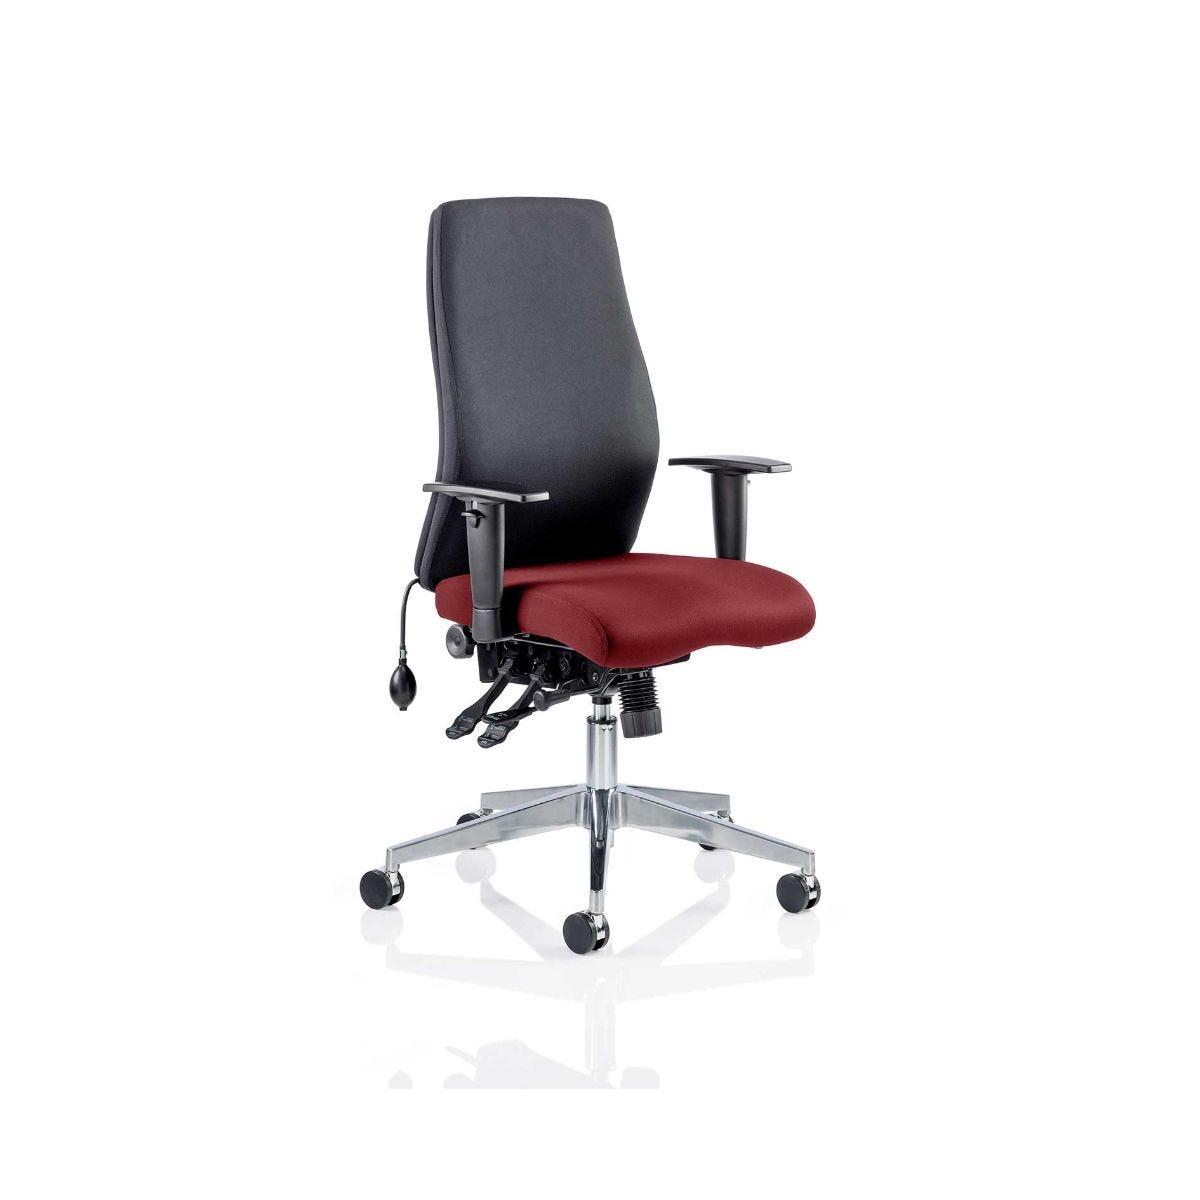 Onyx Office Chair, Ginseng